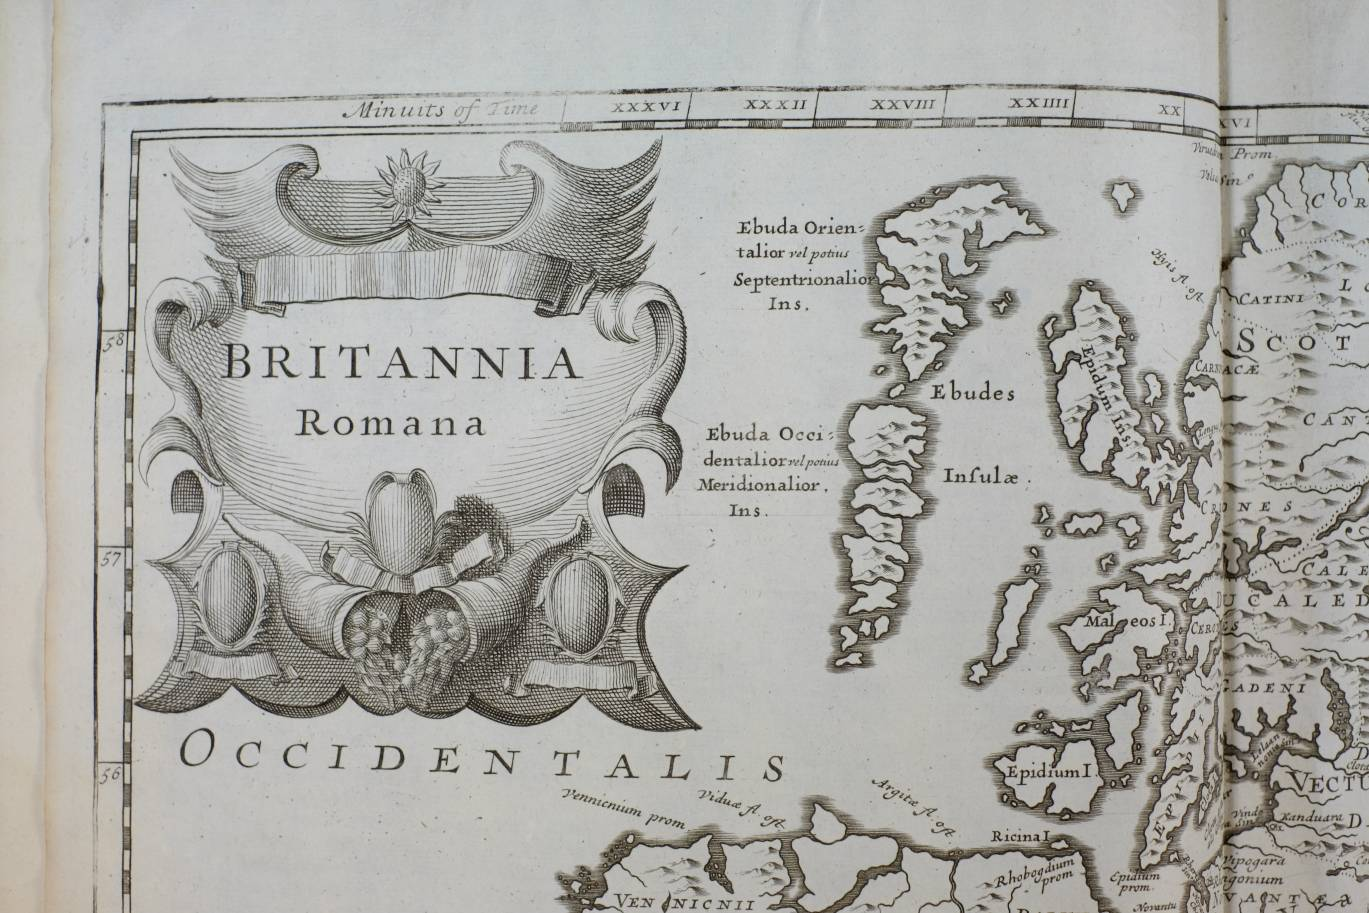 Lot 60 - Camden (William). Camden's Britannia, newly translated into English with large additions and